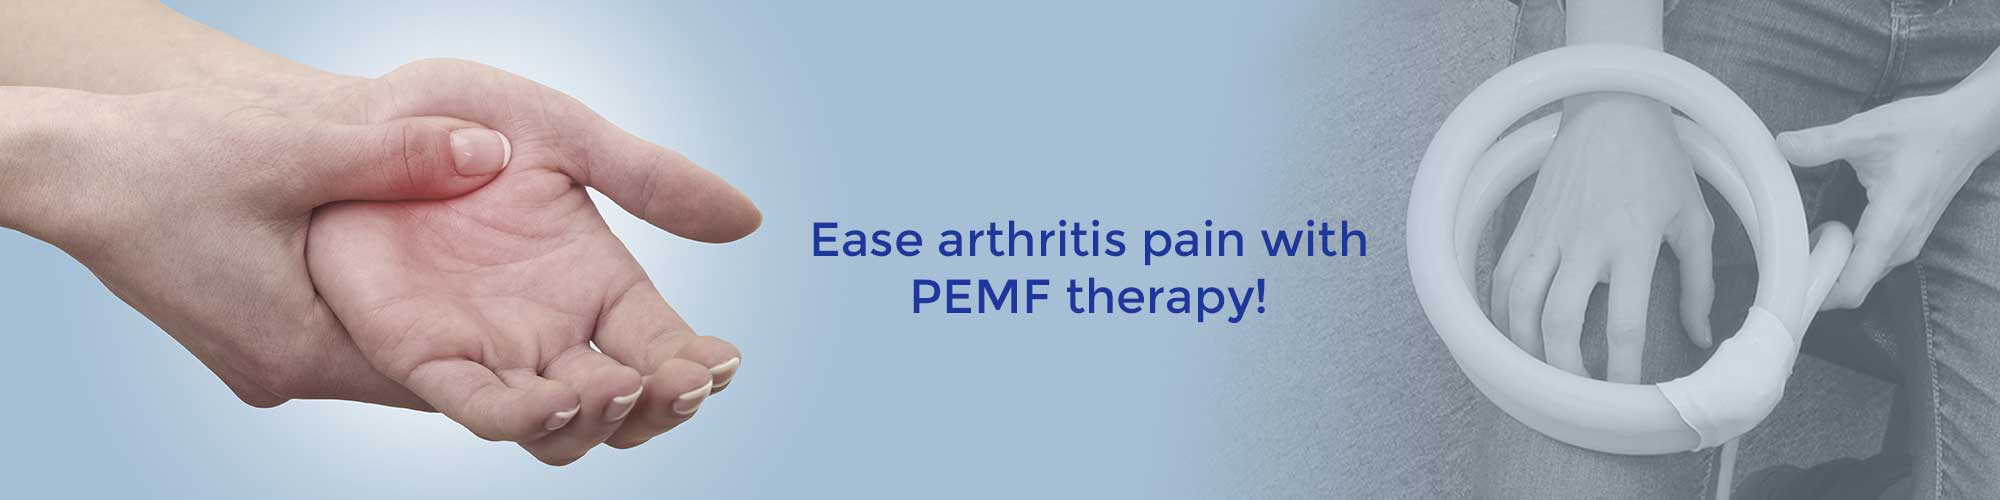 Ease arthritis pain with PEMF therapy!